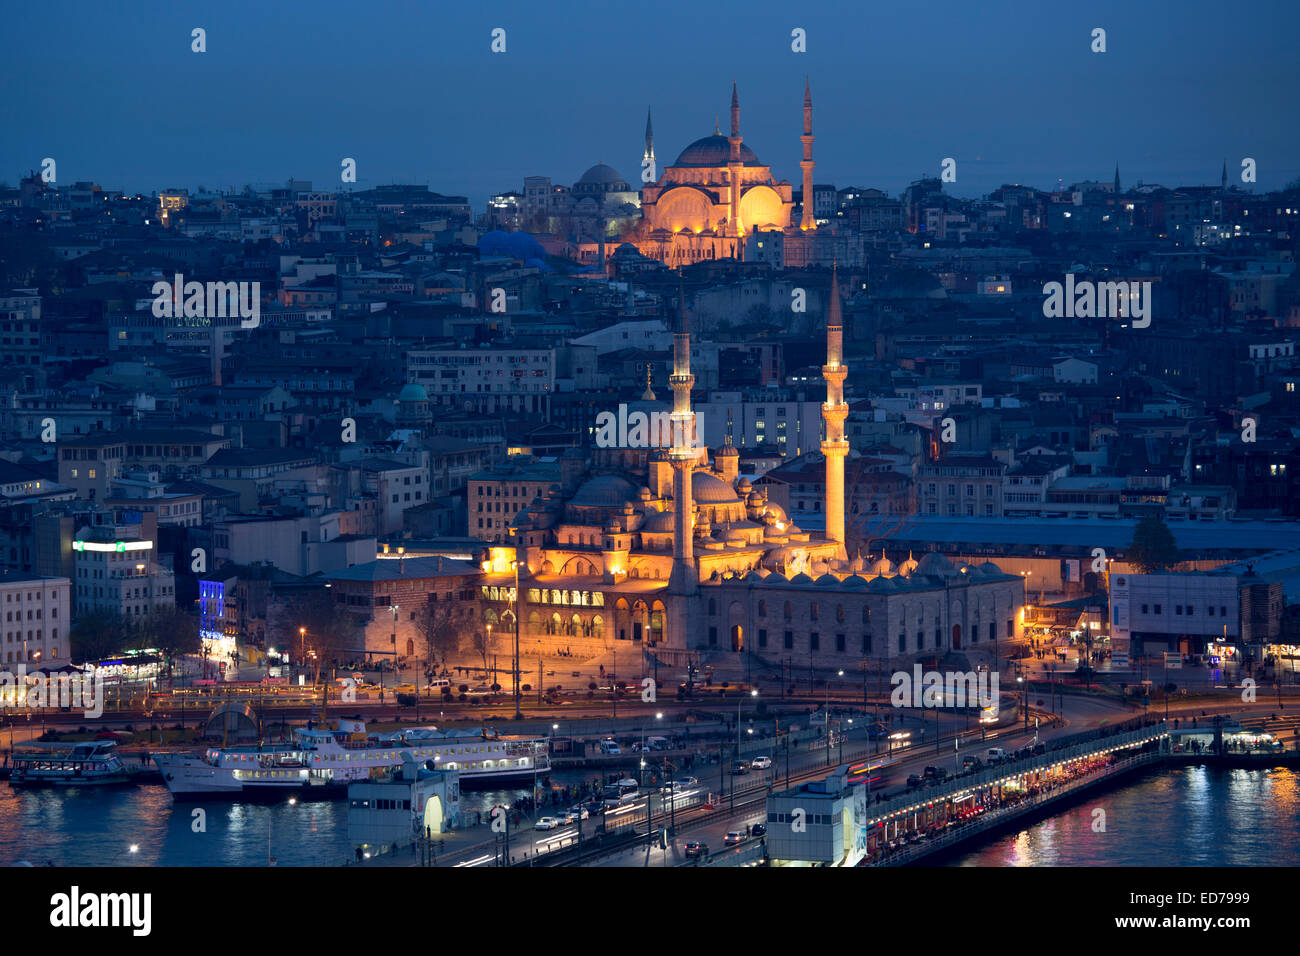 Skyline city scene Yeni Camii great mosque by Golden Horn of Bosphorus River and Hagia Sophia in Istanbul, Republic - Stock Image